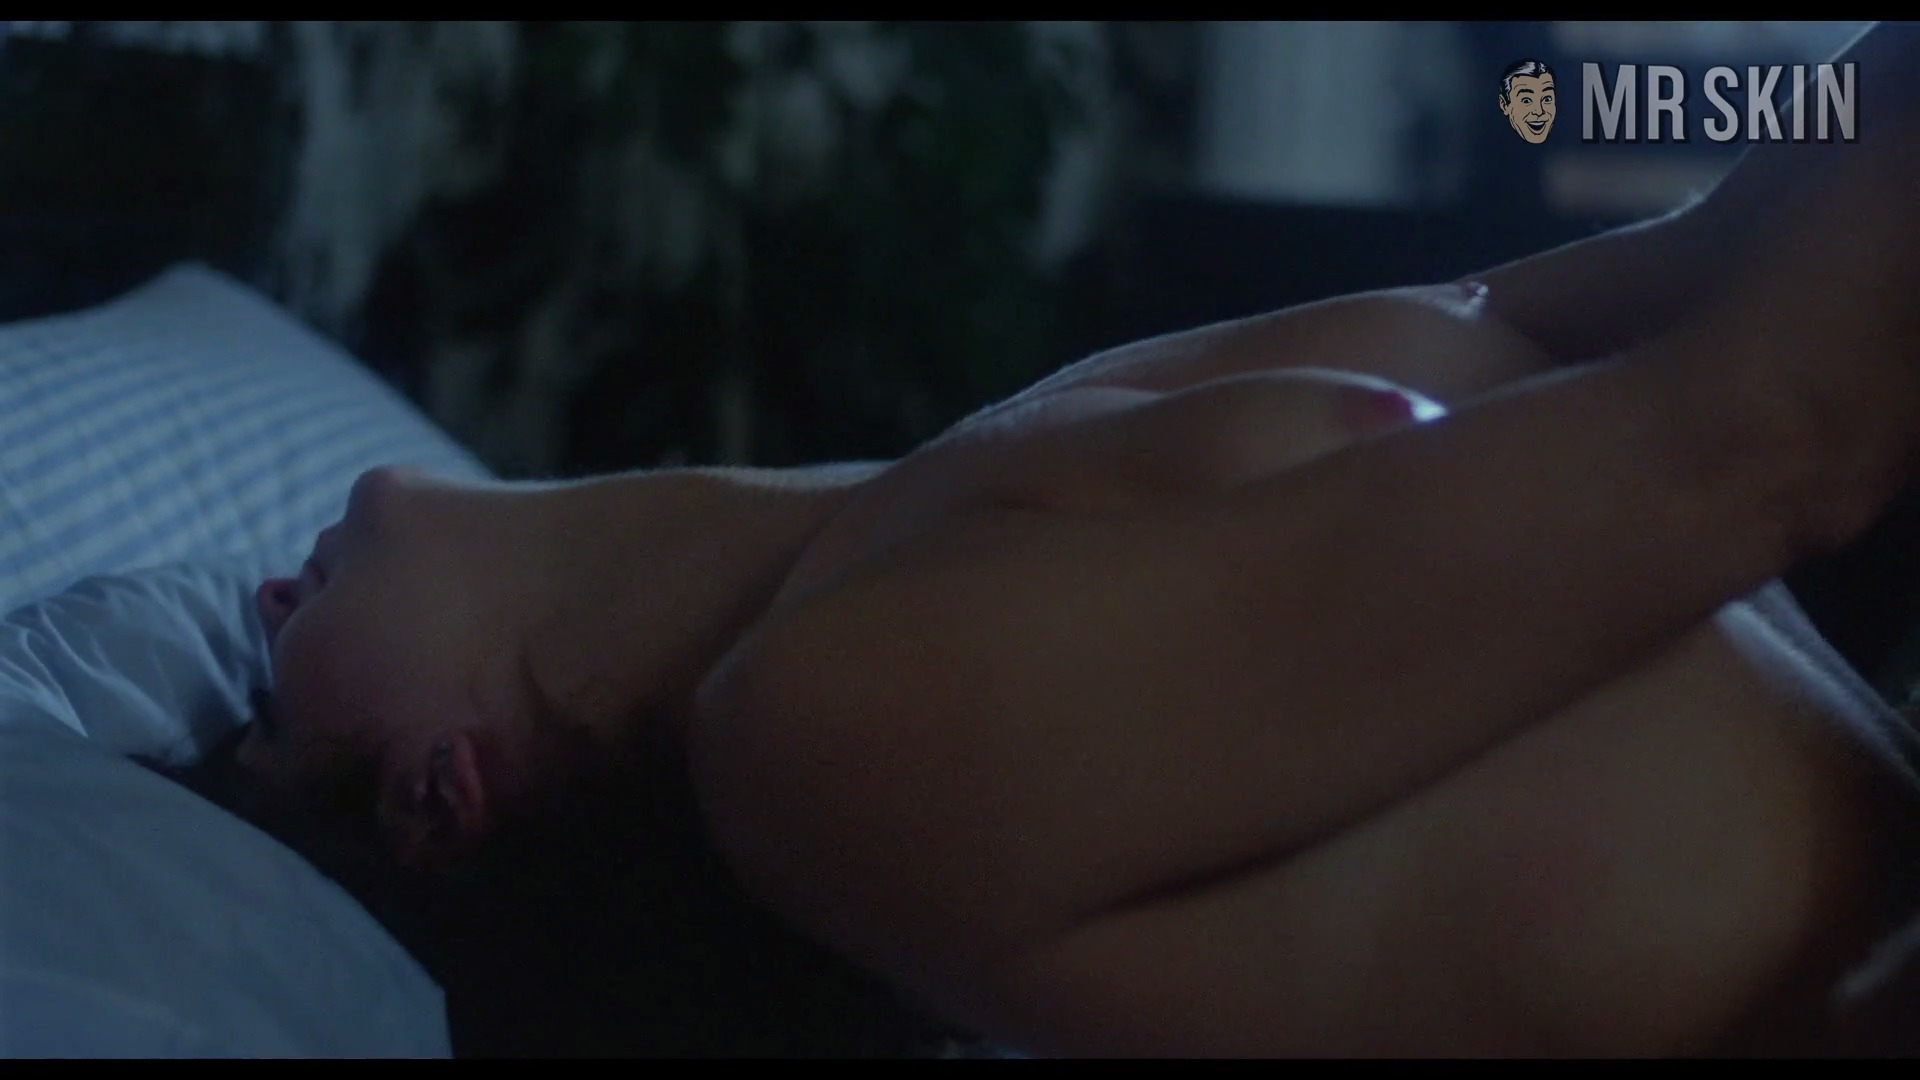 Kirstie Alley Naked And Sexy Nude Scene Compilation At Mr Skin